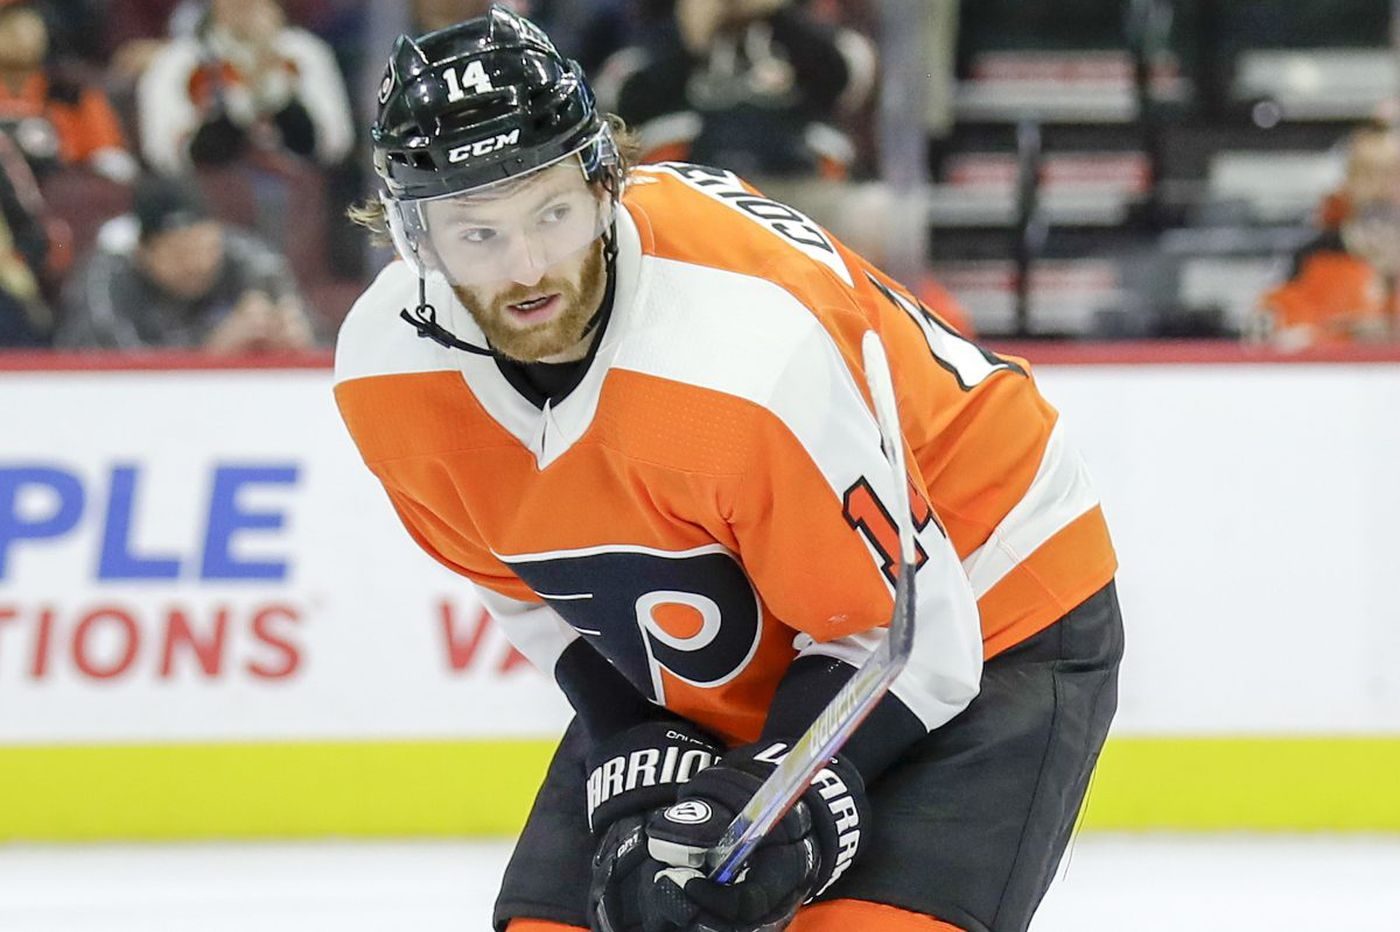 First Sean Couturier found his game, then his voice